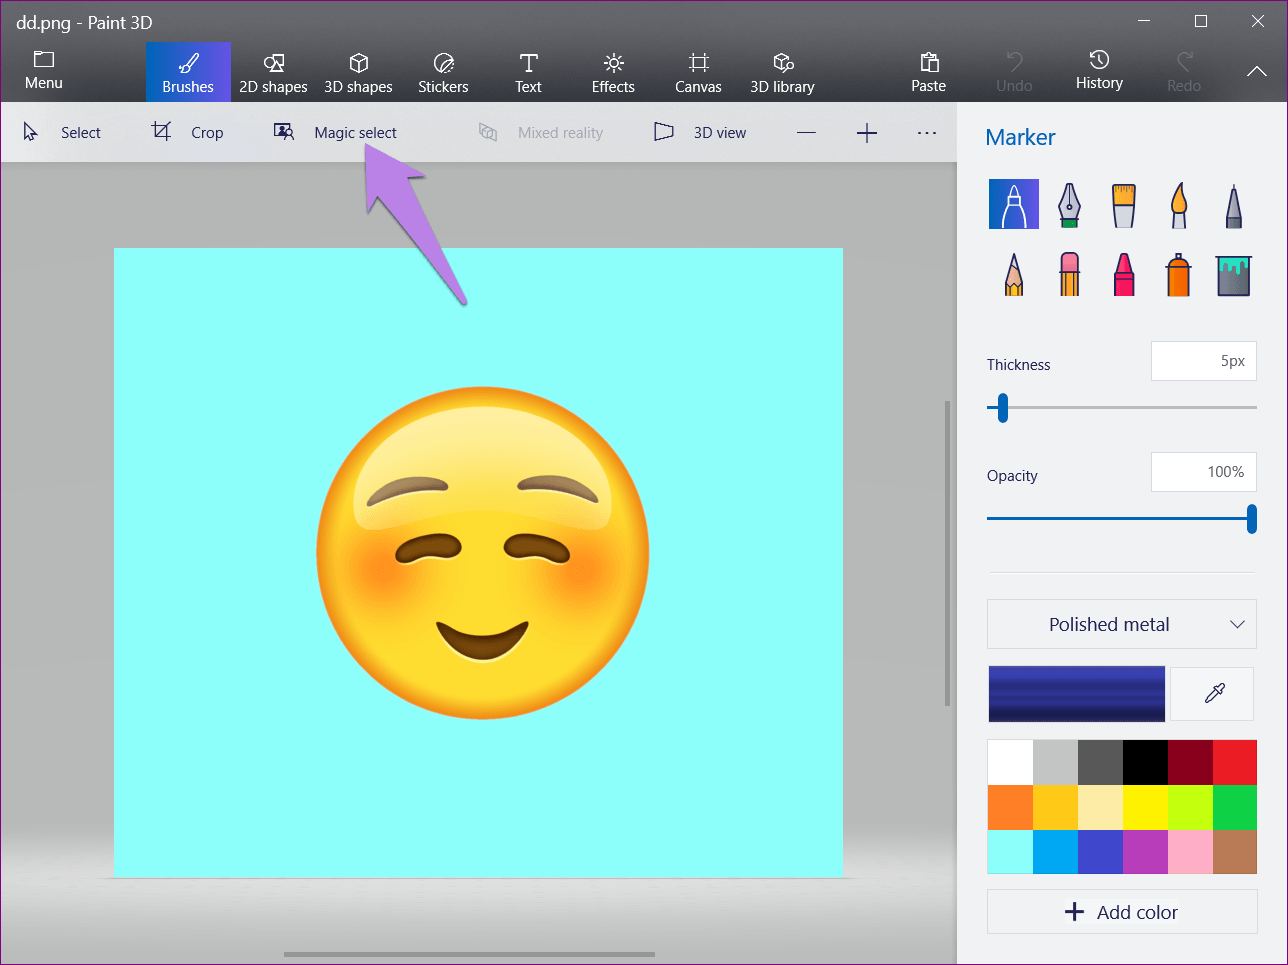 How to Make Background Transparent in Paint 3D.